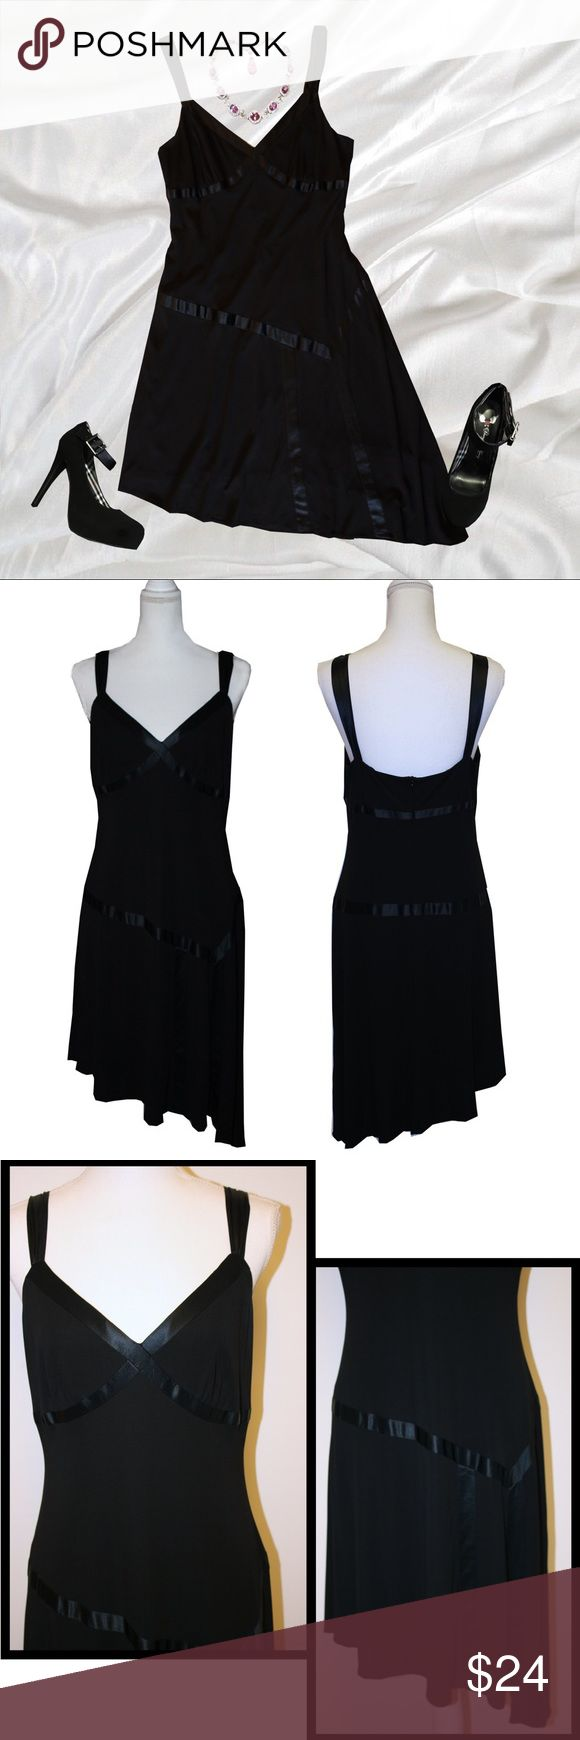 """Plus"" Nine West Black Asymmetrical Hem Dress This is the perfect little black dress!!  * Satiny detail  * Asymmetrical hem  * Fully lined * Back zip * Stretchy  * 72% rayon / 28% Polyester   APPROXIMATE MEASUREMENTS   * Armpit to pit 18"" * Waist 32"" * Hips 39"" * Length short side 38.5"" * Length long side 41.5""  I do not believe this dress has ever been worn. It is in pristine condition and has no signs of wear. It is by Nine West and size 14. Nine West Dresses Asymmetrical"